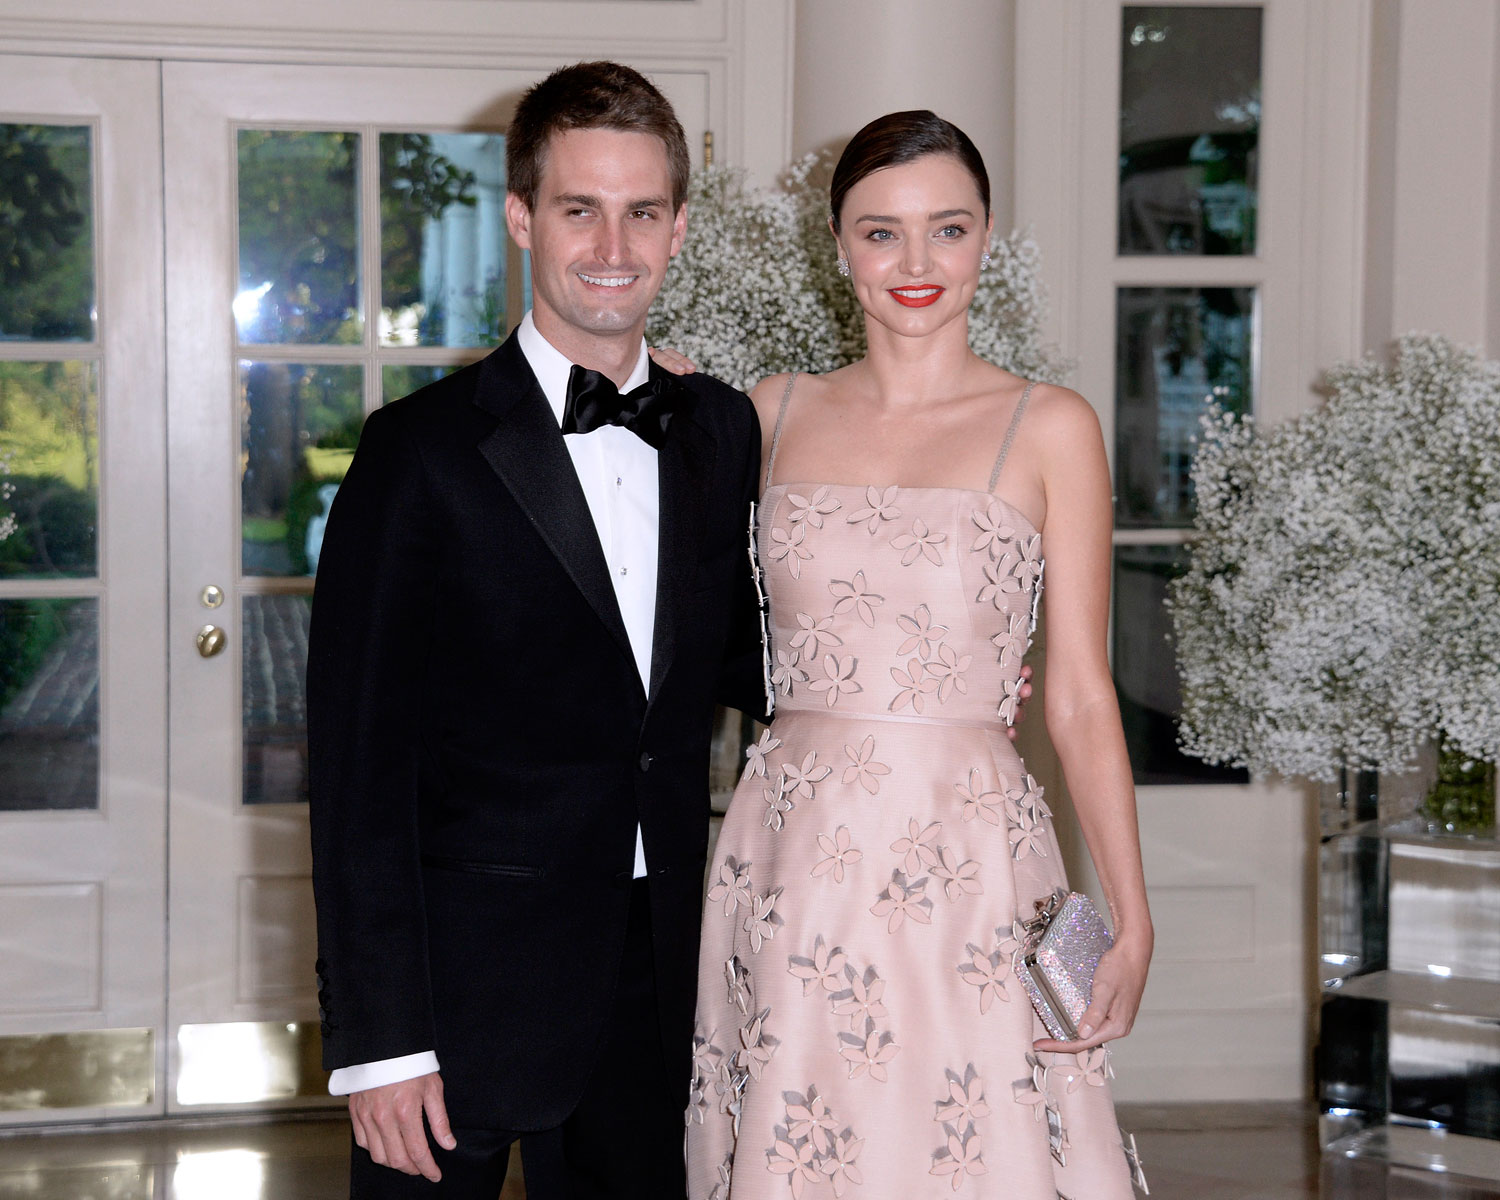 Miranda Kerr Wedding Dress.Miranda Kerr Shares The First Photos From Her Wedding To Evan Spiegel